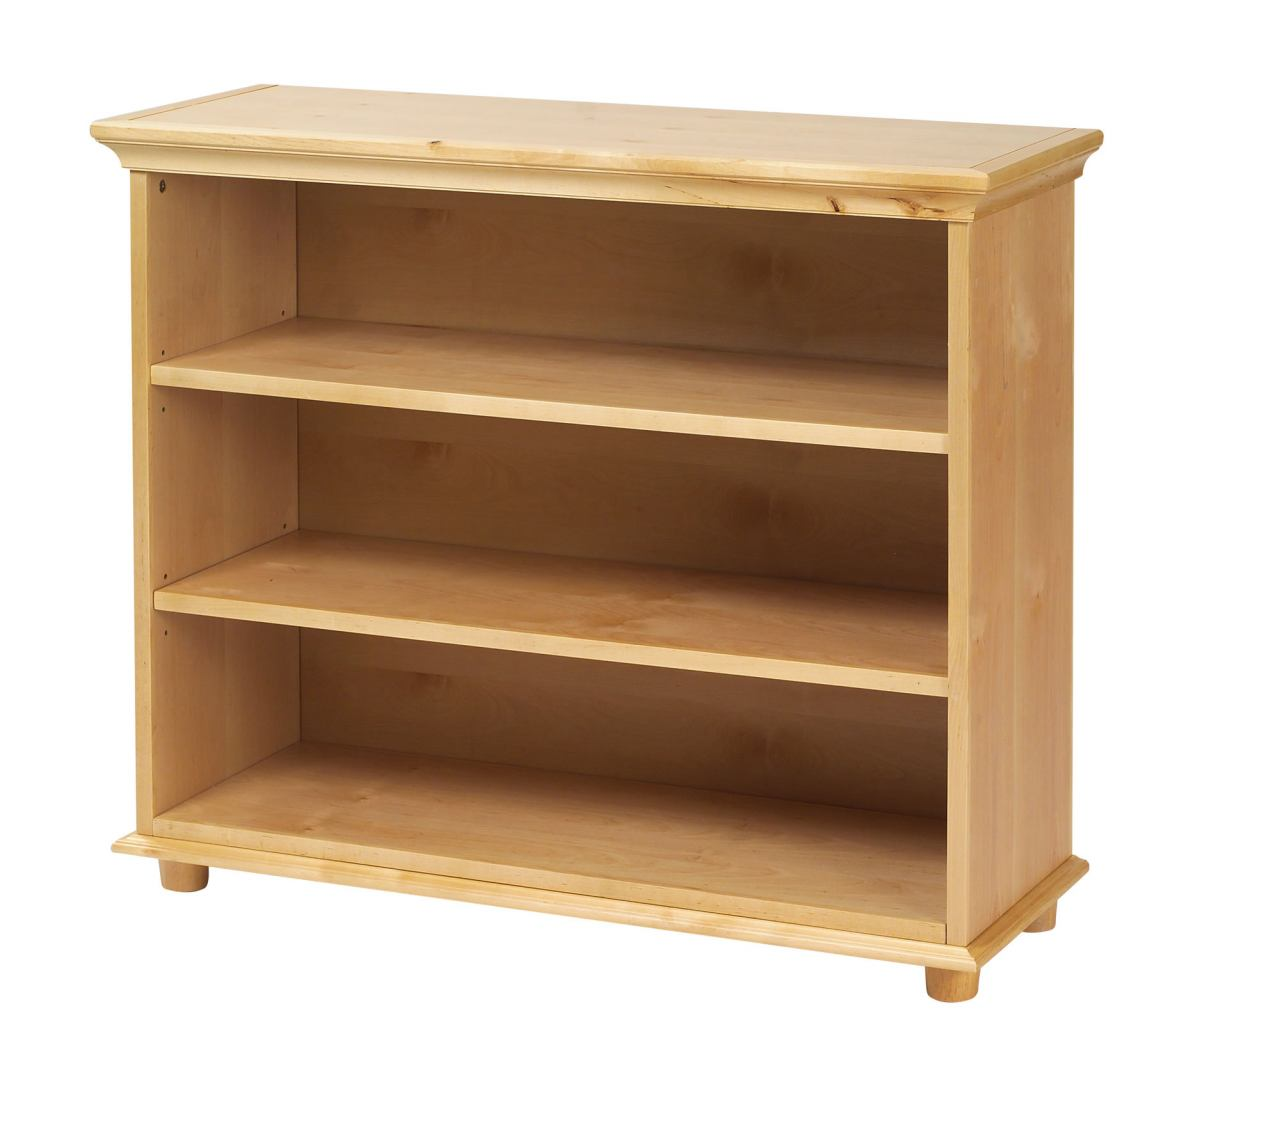 Maxtrix 3 Shelf Bookcase with Crown and Base in Natural HUGE 3-001